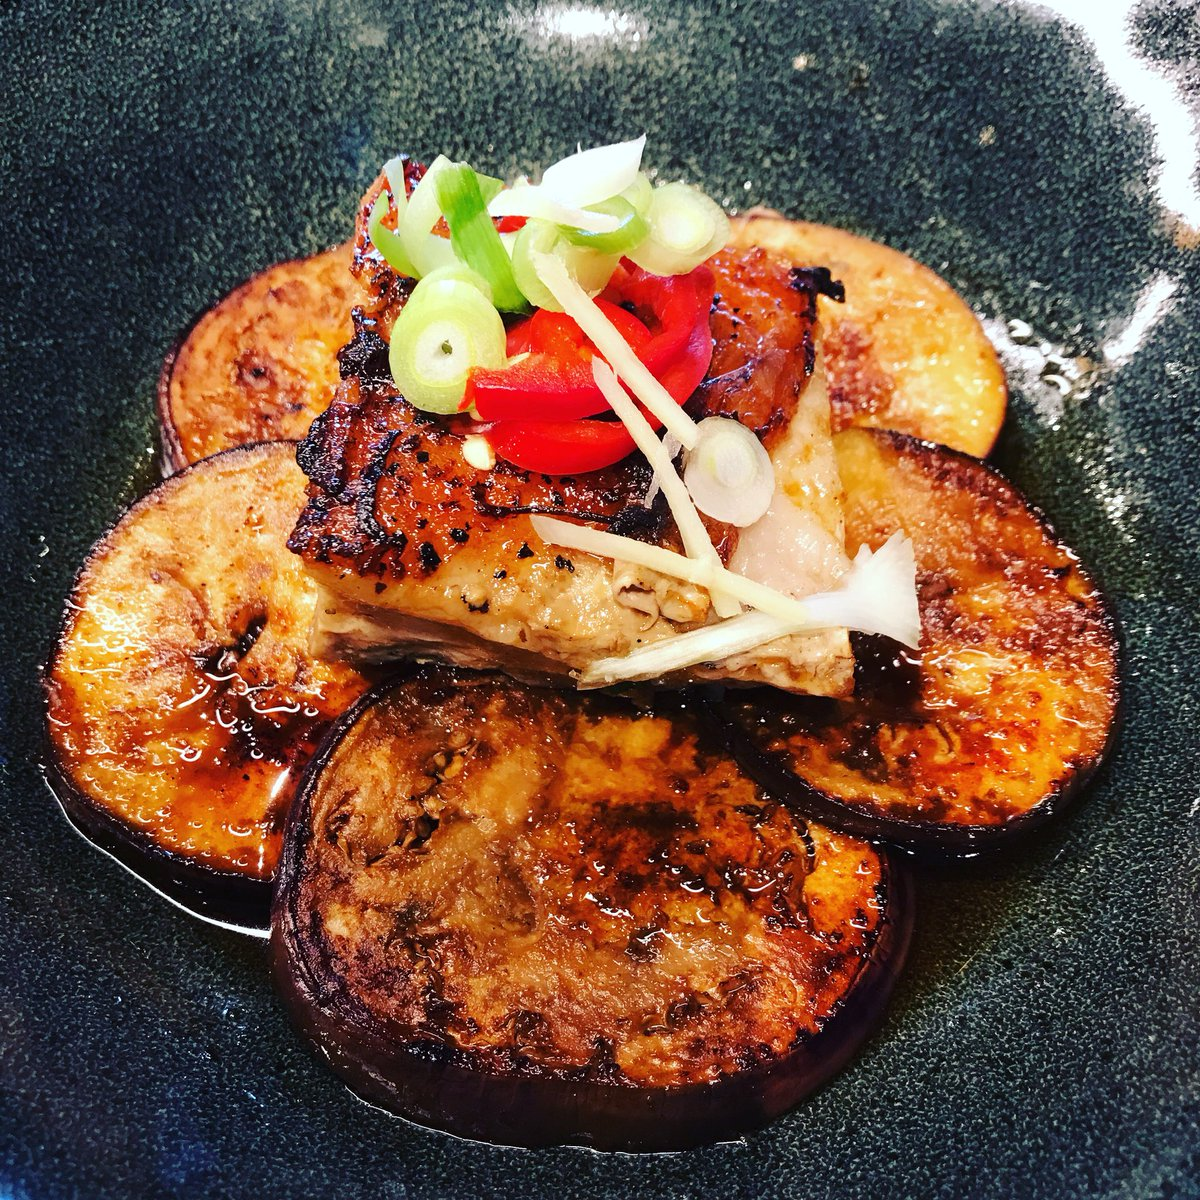 #bellypork #eggplant #tasty #lunch favourite high street eateries @wagamama_uk https://t.co/hG1fbtM4O7